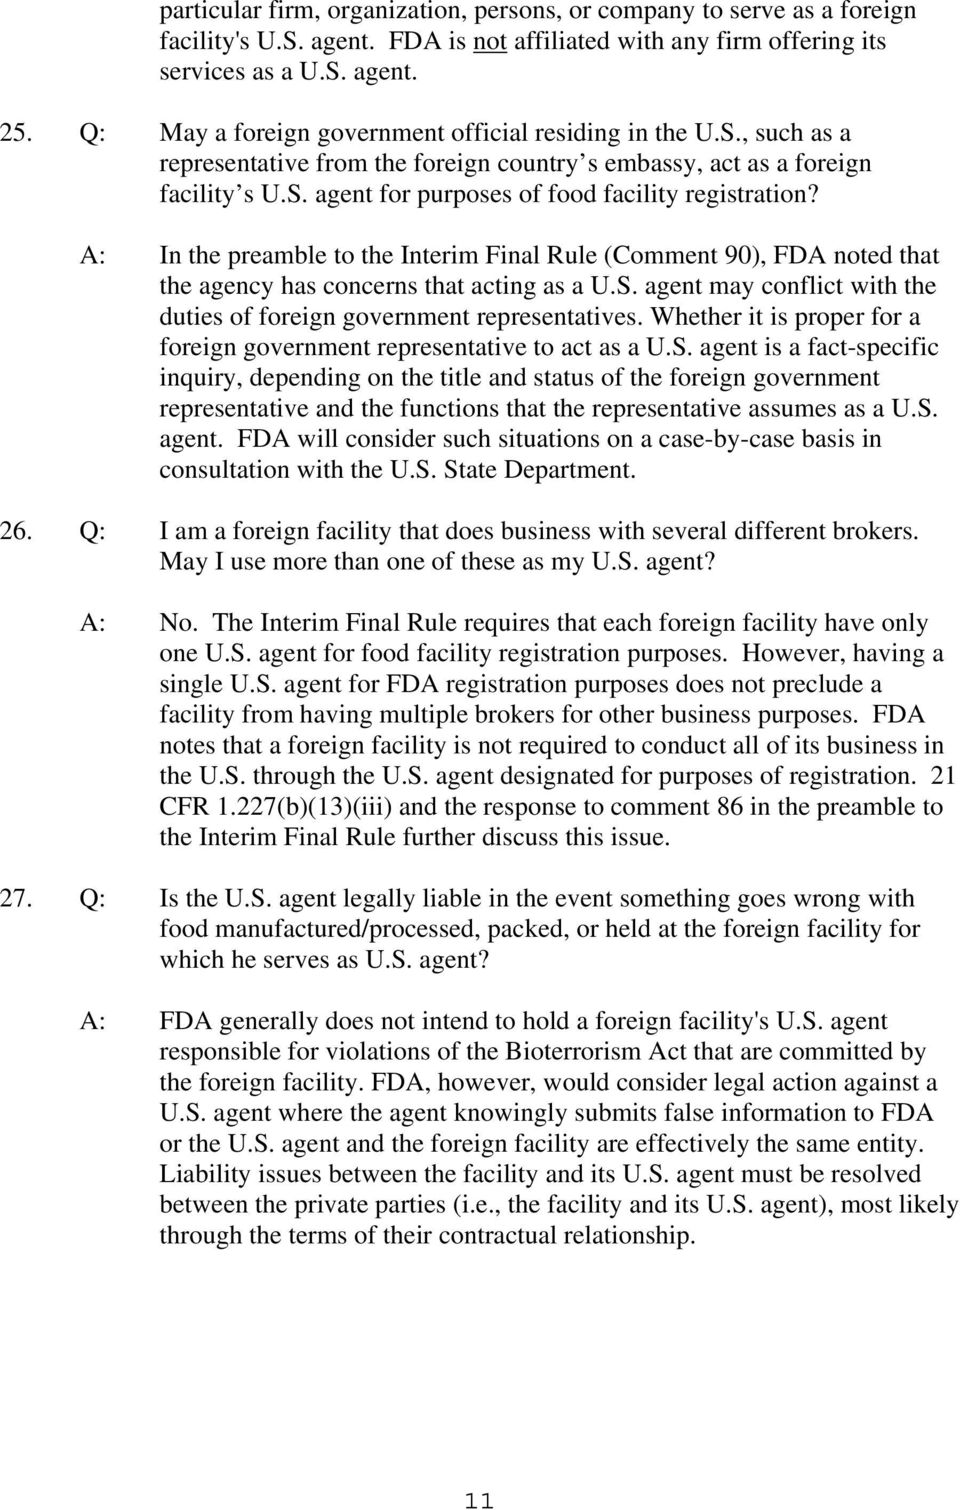 A: In the preamble to the Interim Final Rule (Comment 90), FDA noted that the agency has concerns that acting as a U.S. agent may conflict with the duties of foreign government representatives.